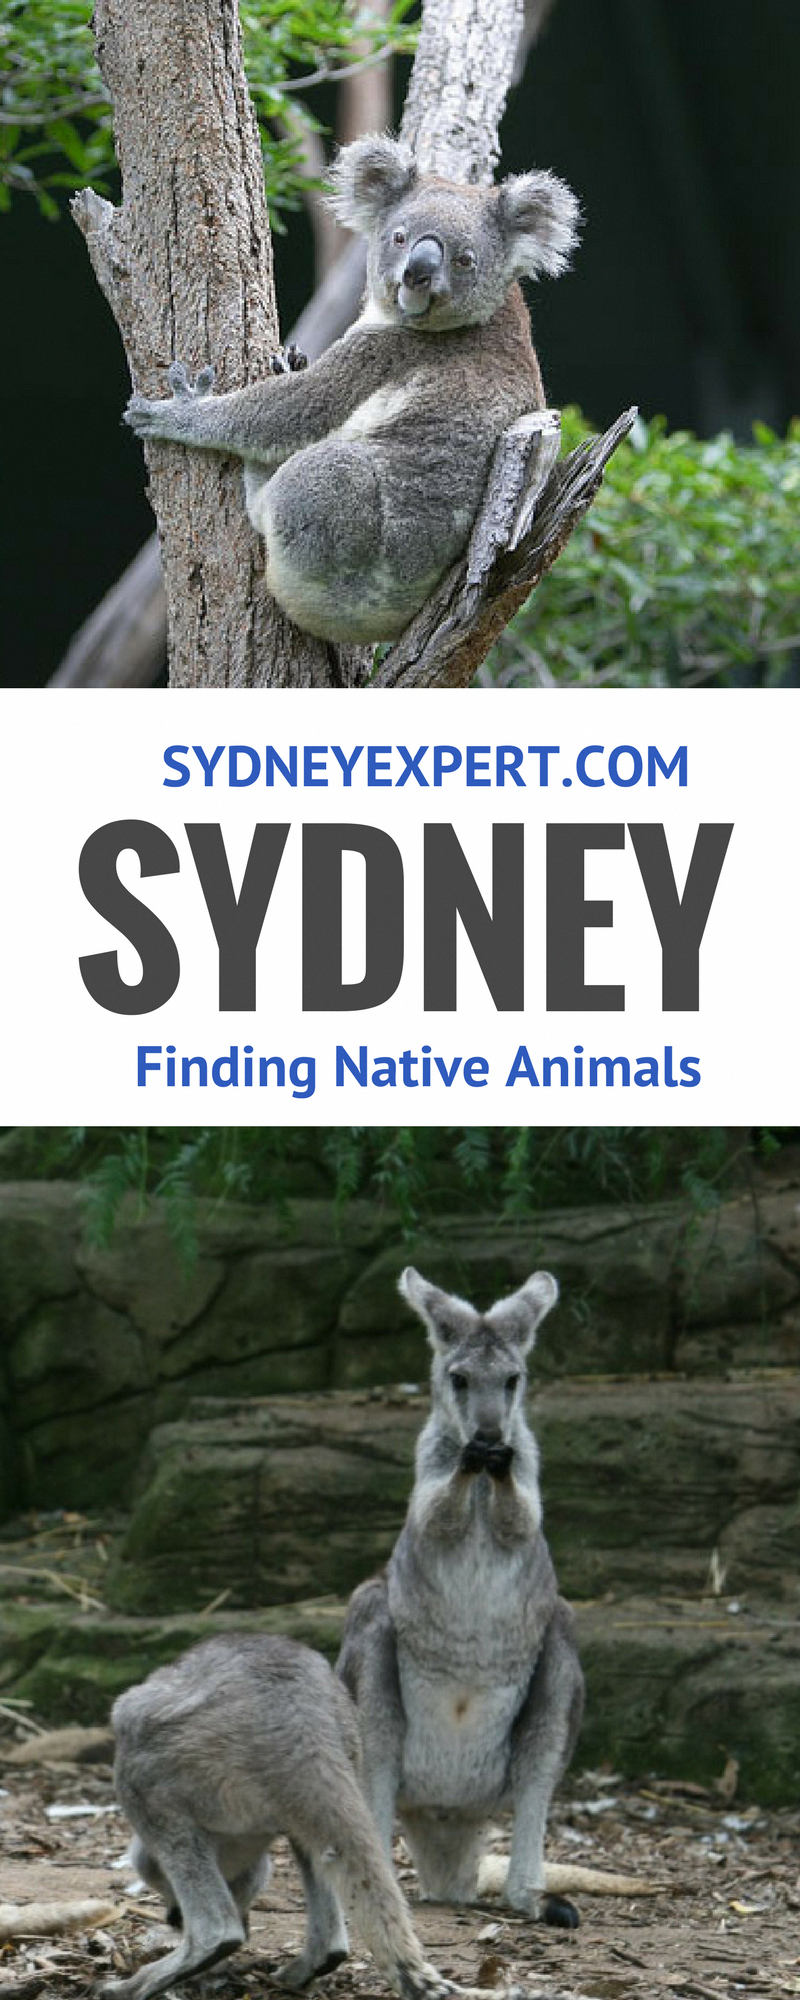 Top 10 Things To Do In Sydney Australia Australia travel